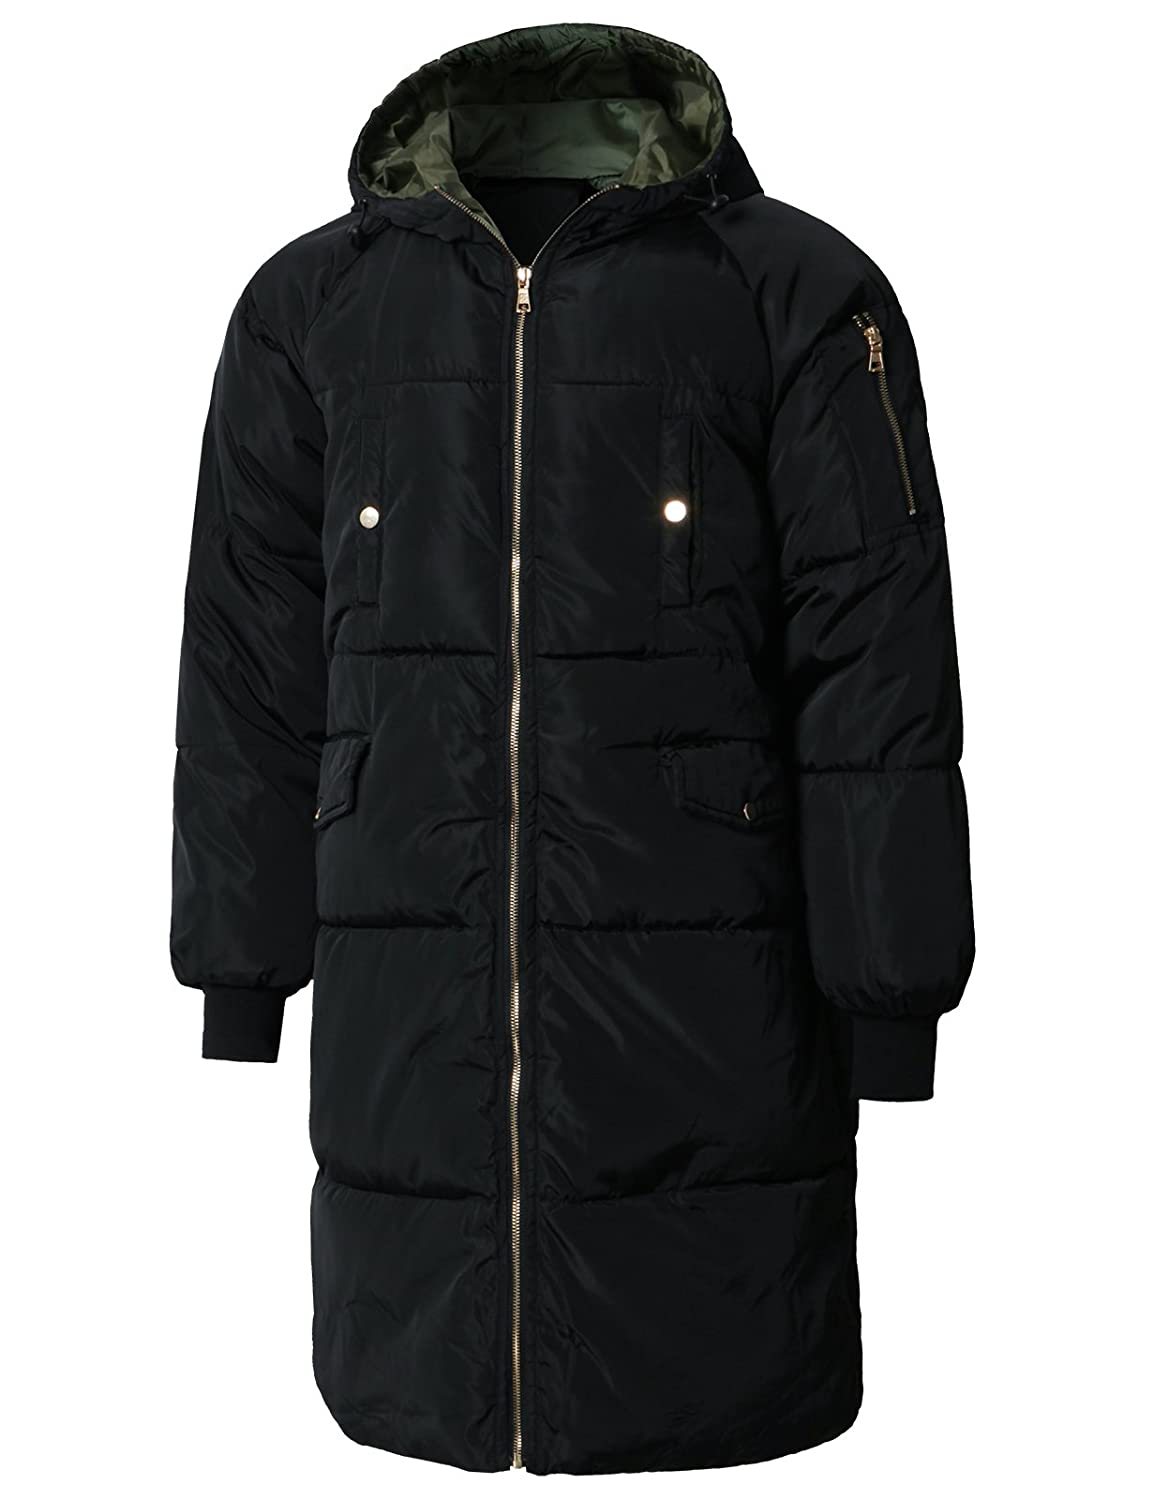 H2H Mens Active Puffer Jackets Outerwear Winter Quilted Long Coats with Hoodie #KMOJA0381